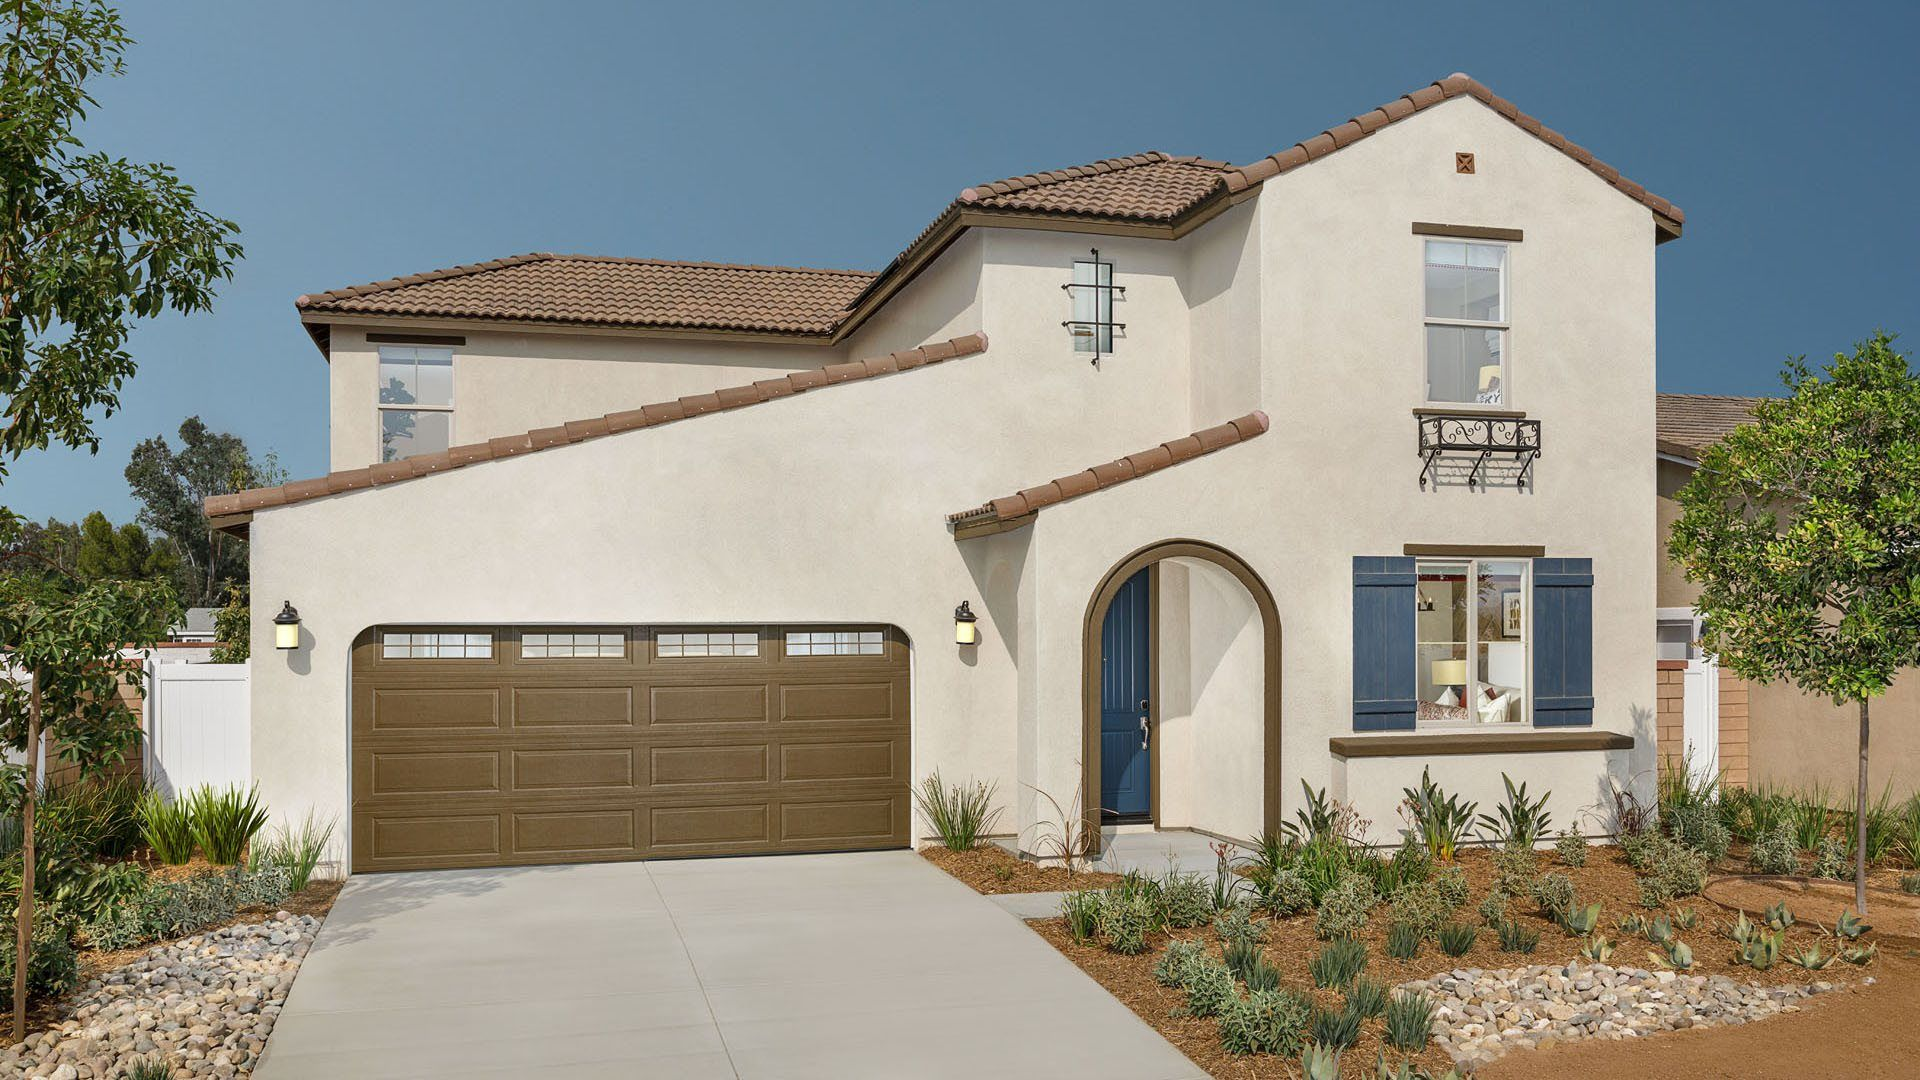 Union Place at Menifee Town Center - Residence Thr